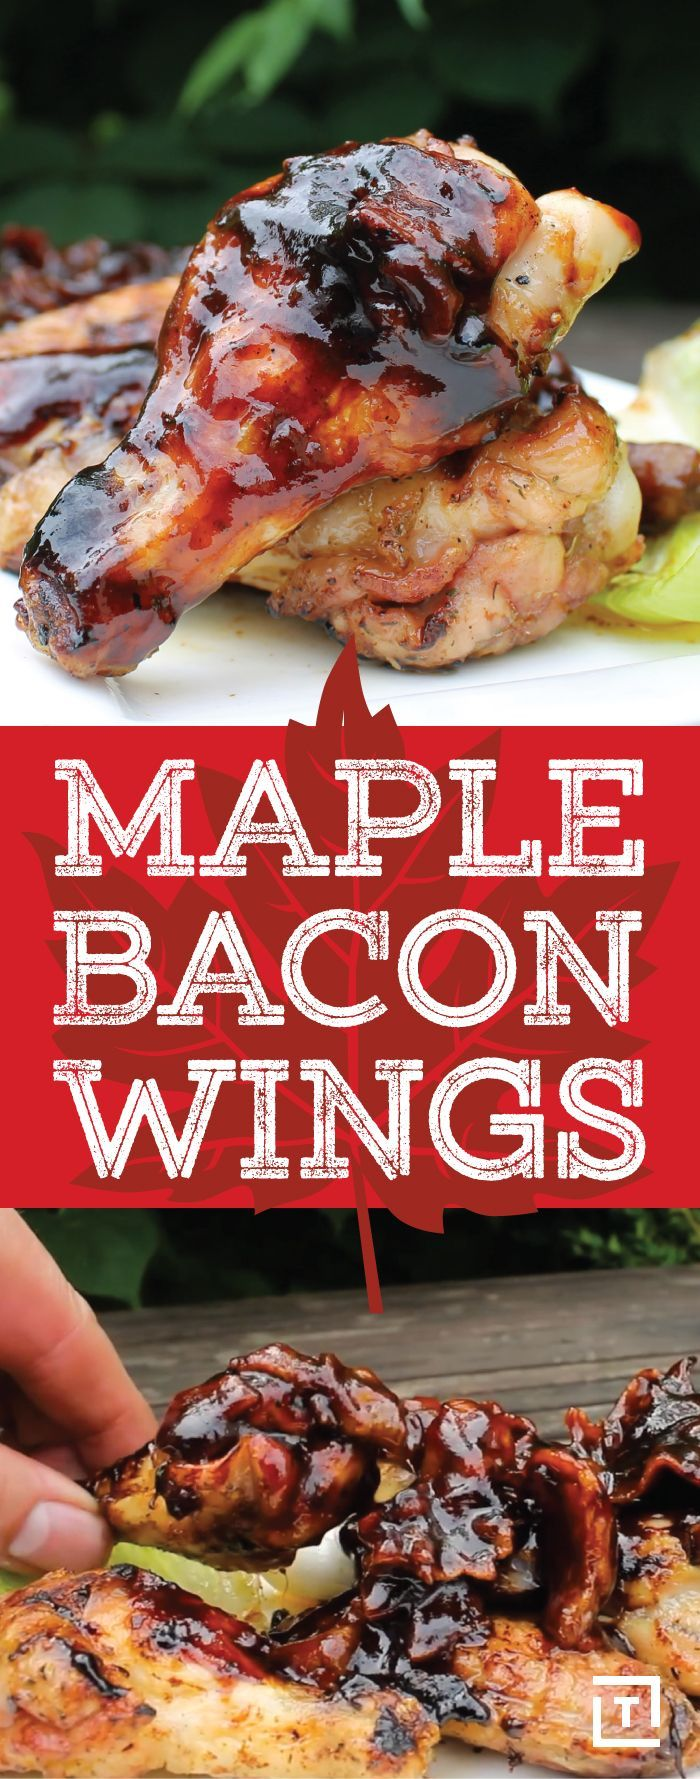 These maple bacon wings feature a finger lickin' good sauce made with bourbon, maple syrup, bacon, butter, and cola. So fire up the grill and make sure you've got some extra napkins, trust us.